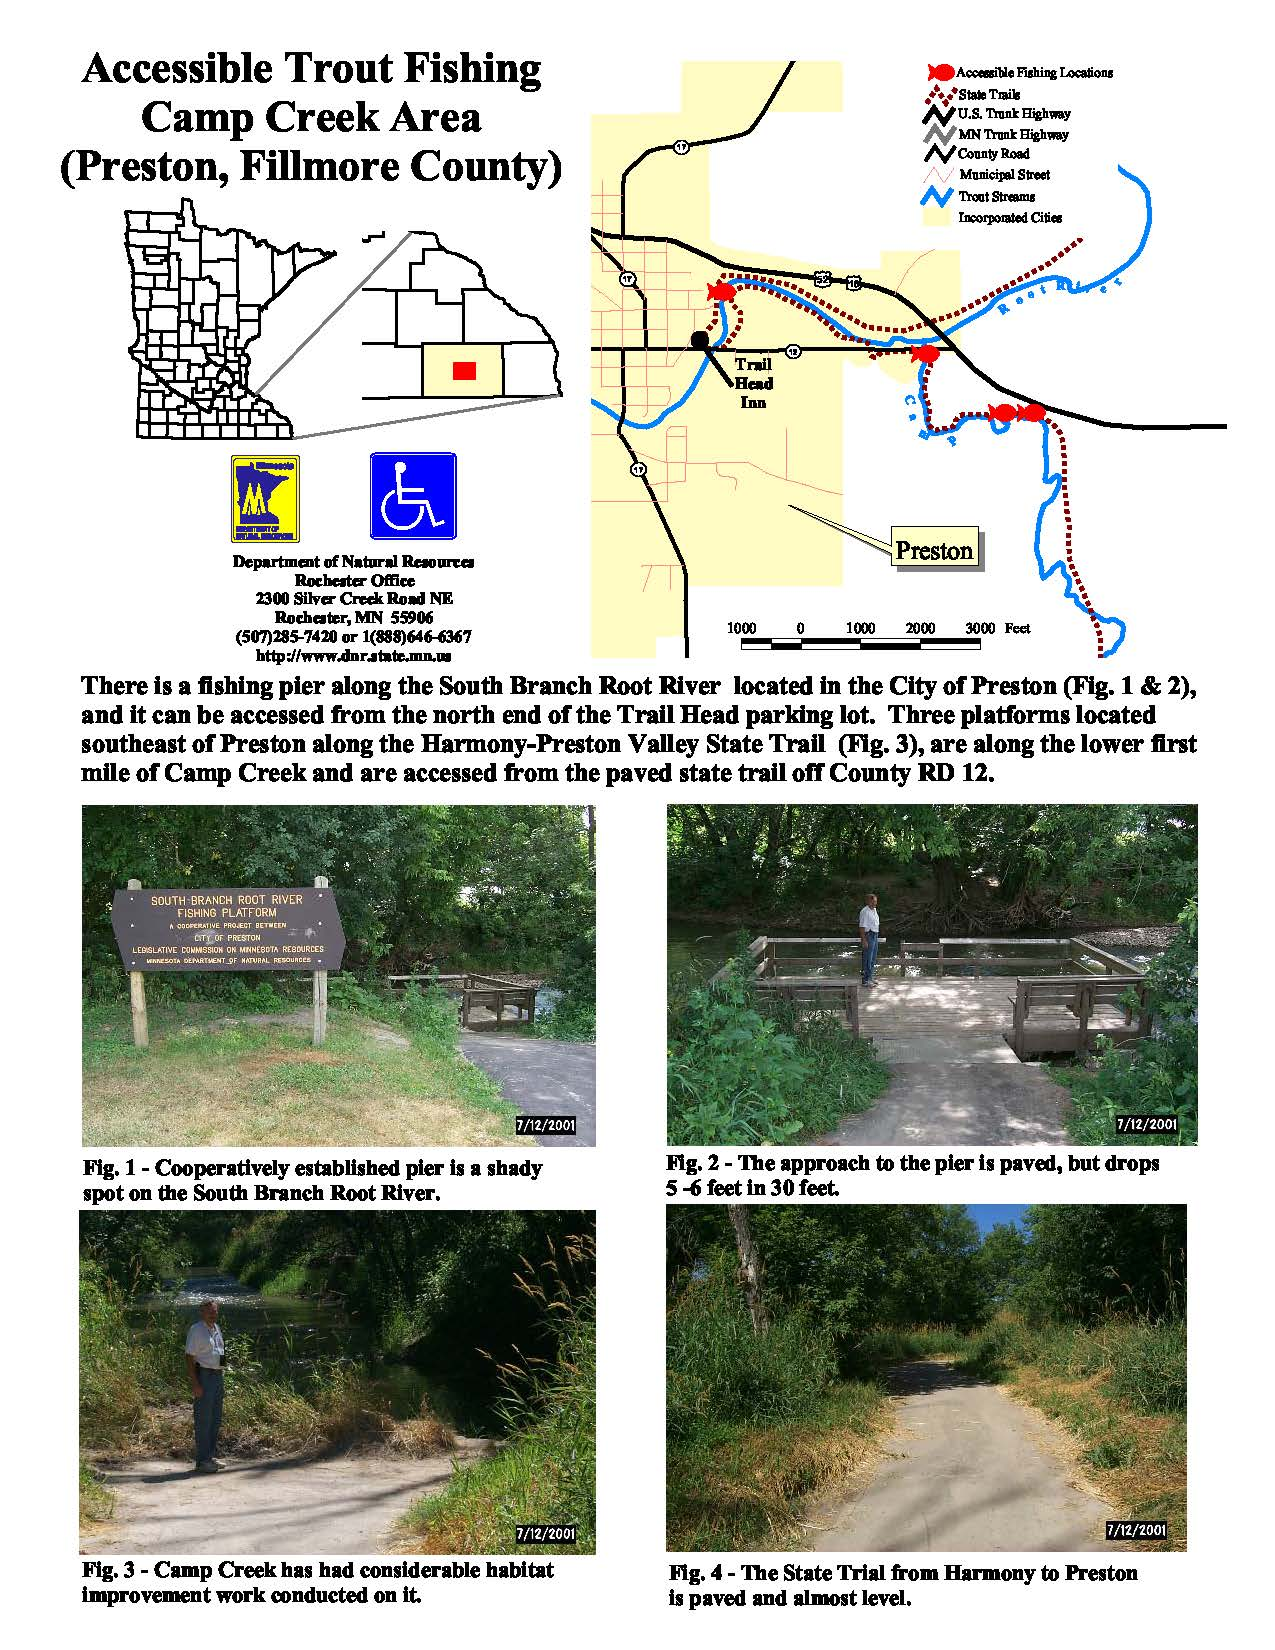 accessibletroutfishingmap_campcreek